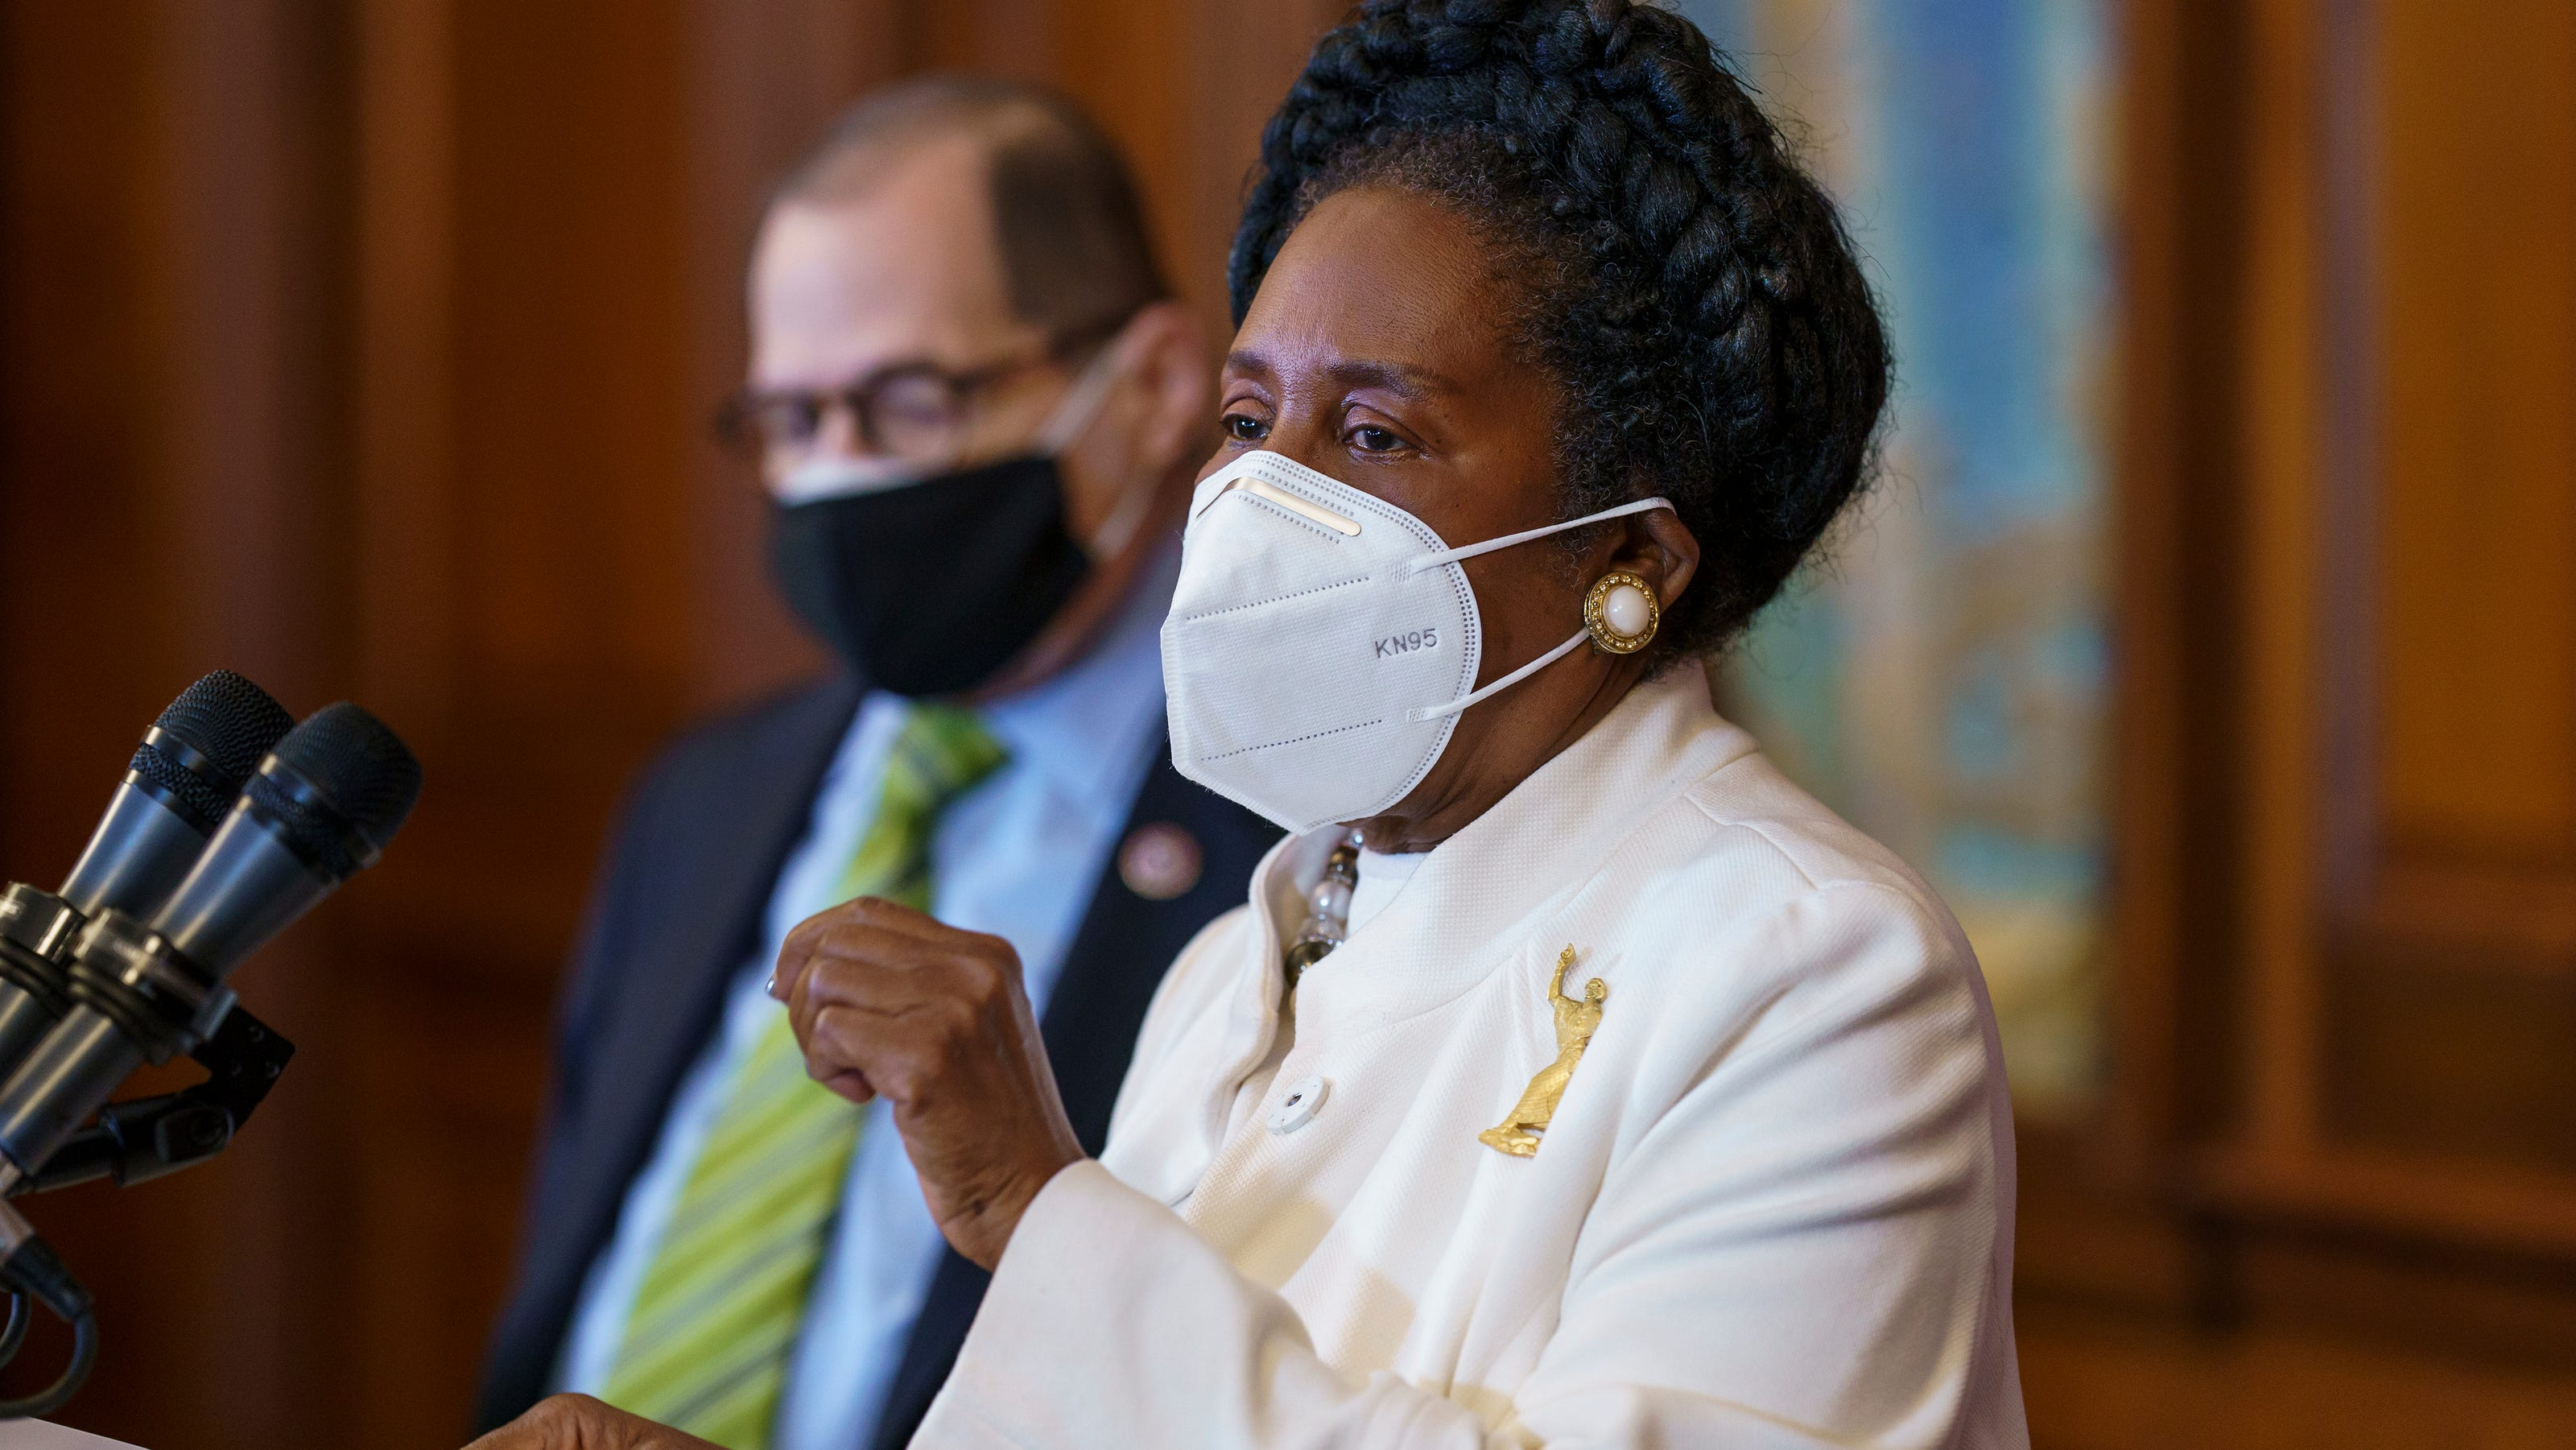 Rep. Sheila Jackson Lee is third House Dem arrested in three weeks for voter rights protests